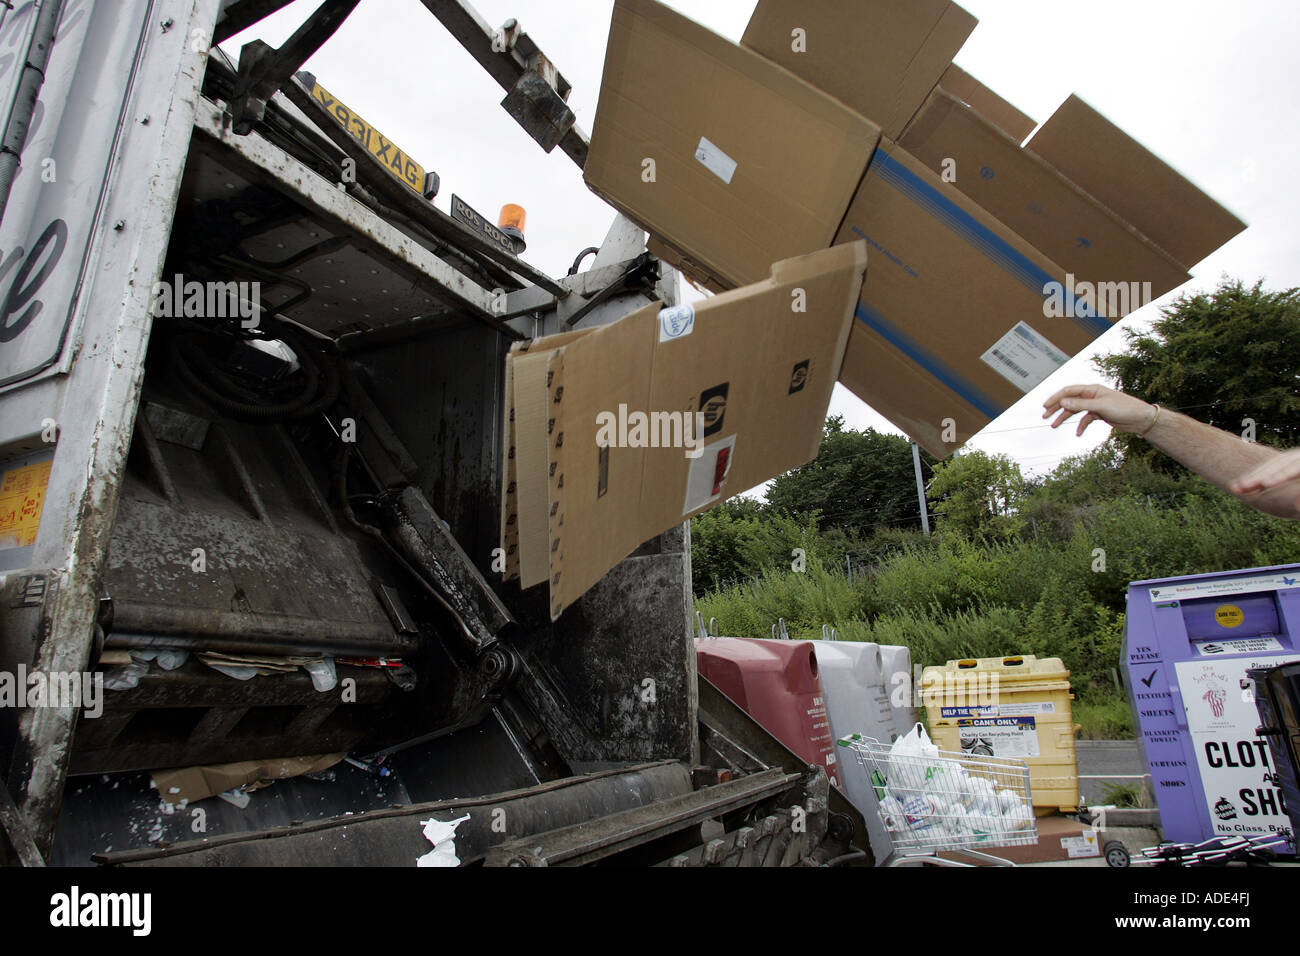 CARDBOARD BOXES BEING THROWN INTO THE BACK OF A REFUSE LORRY. - Stock Image